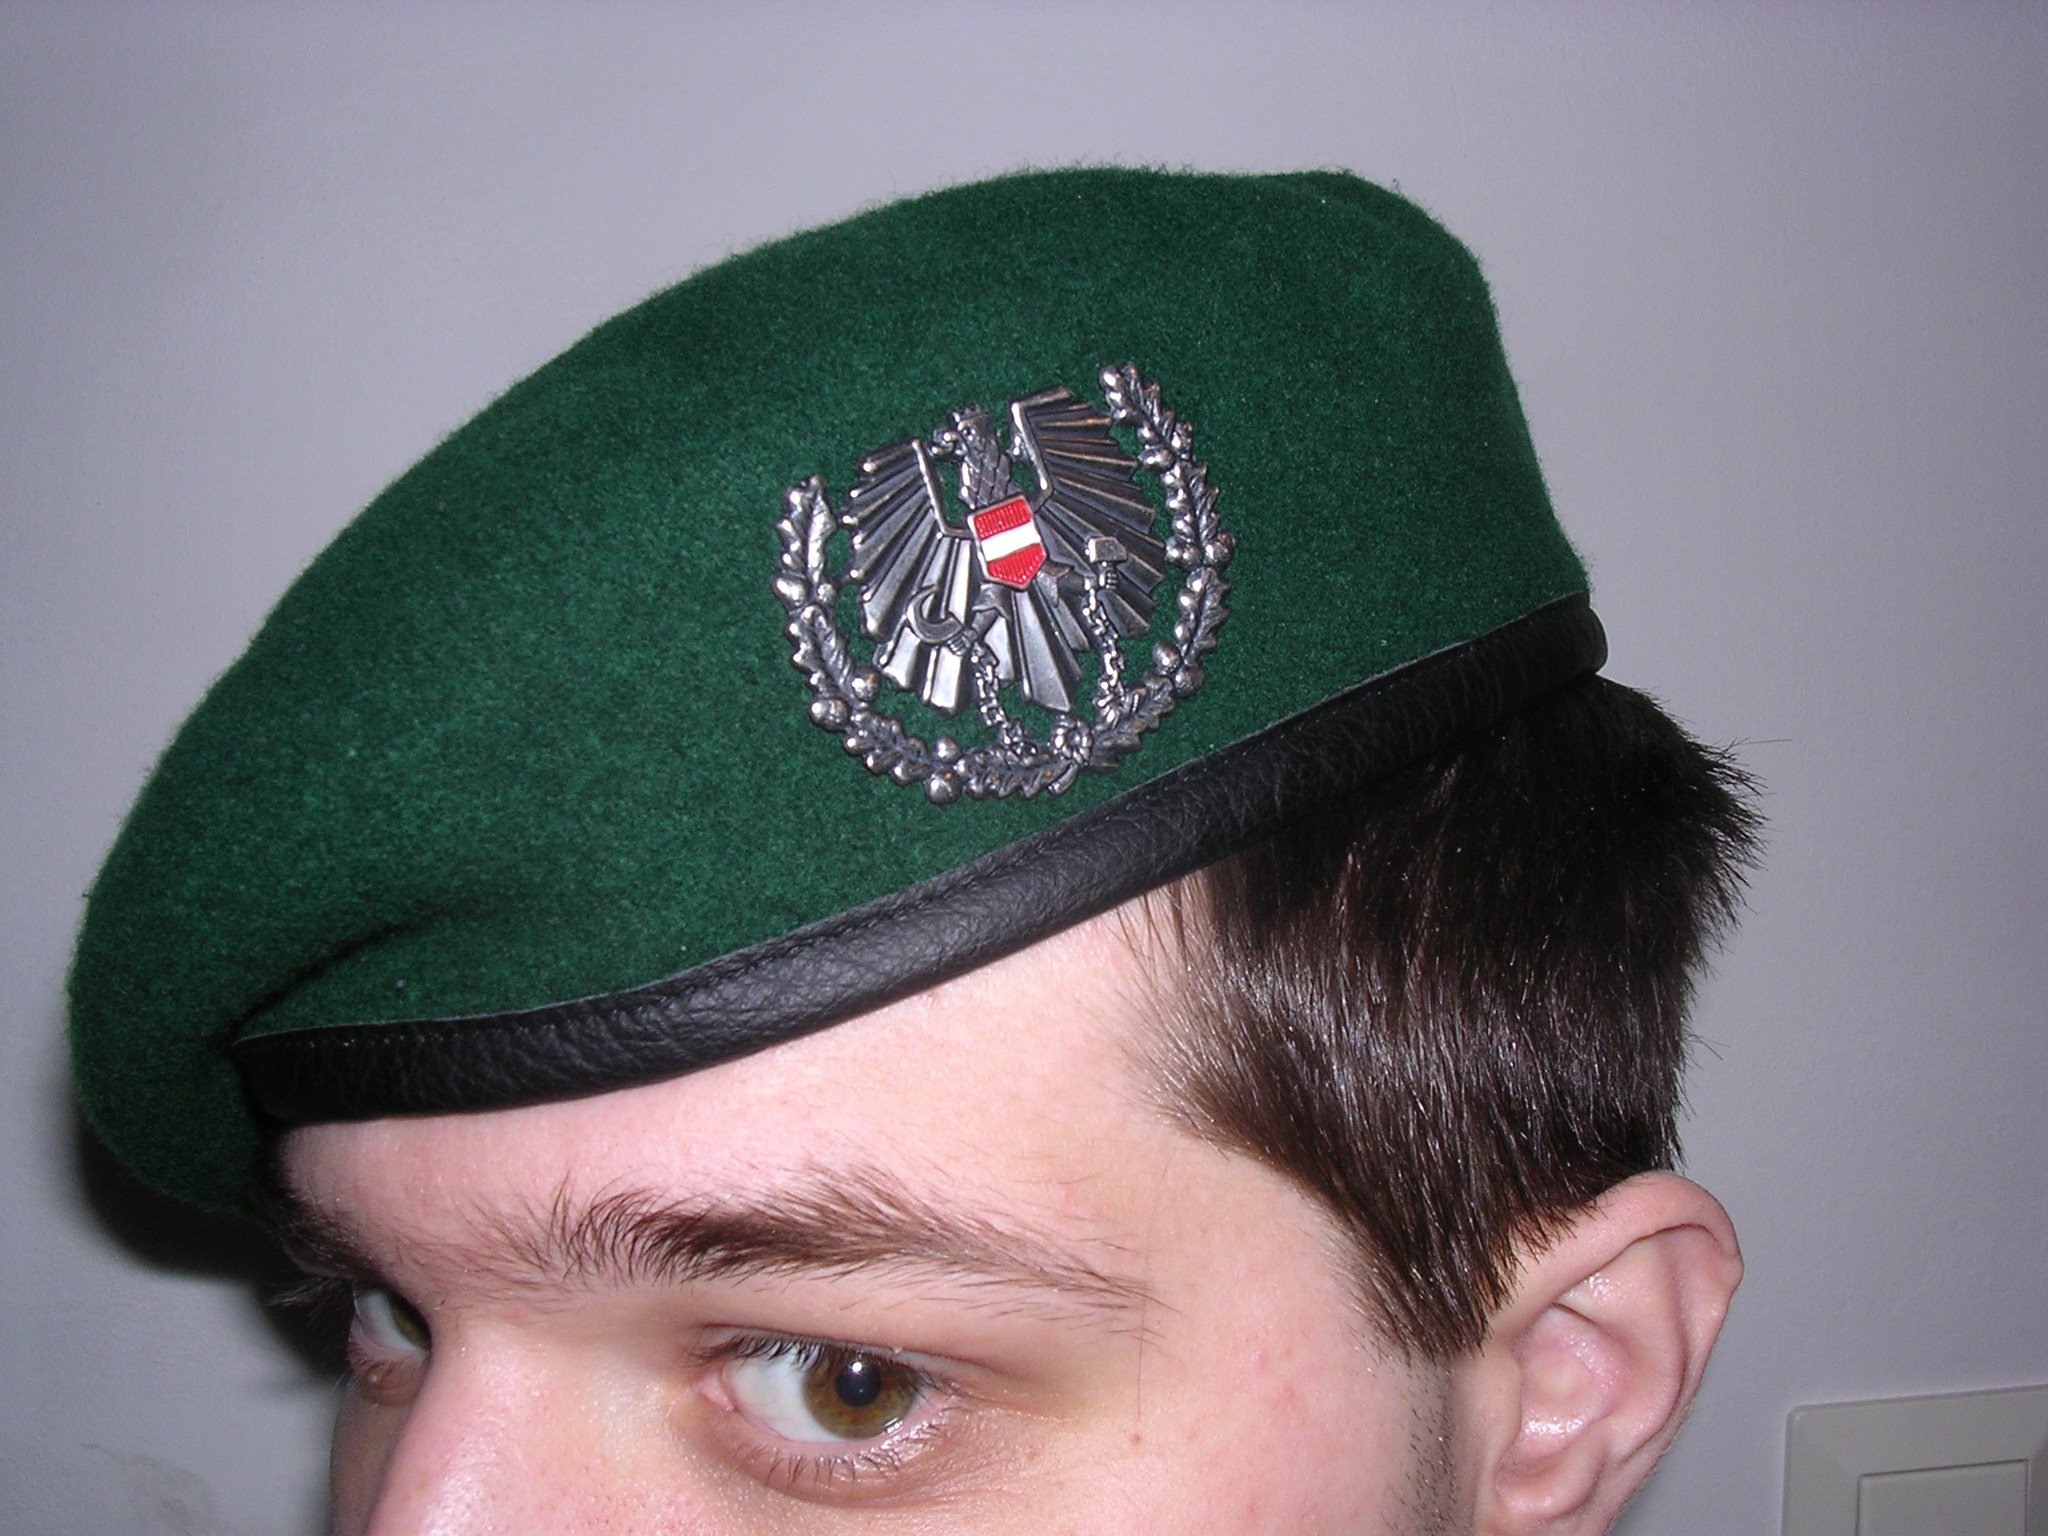 a4514d3a6f9 Austrian green beret with silver coat of arms.